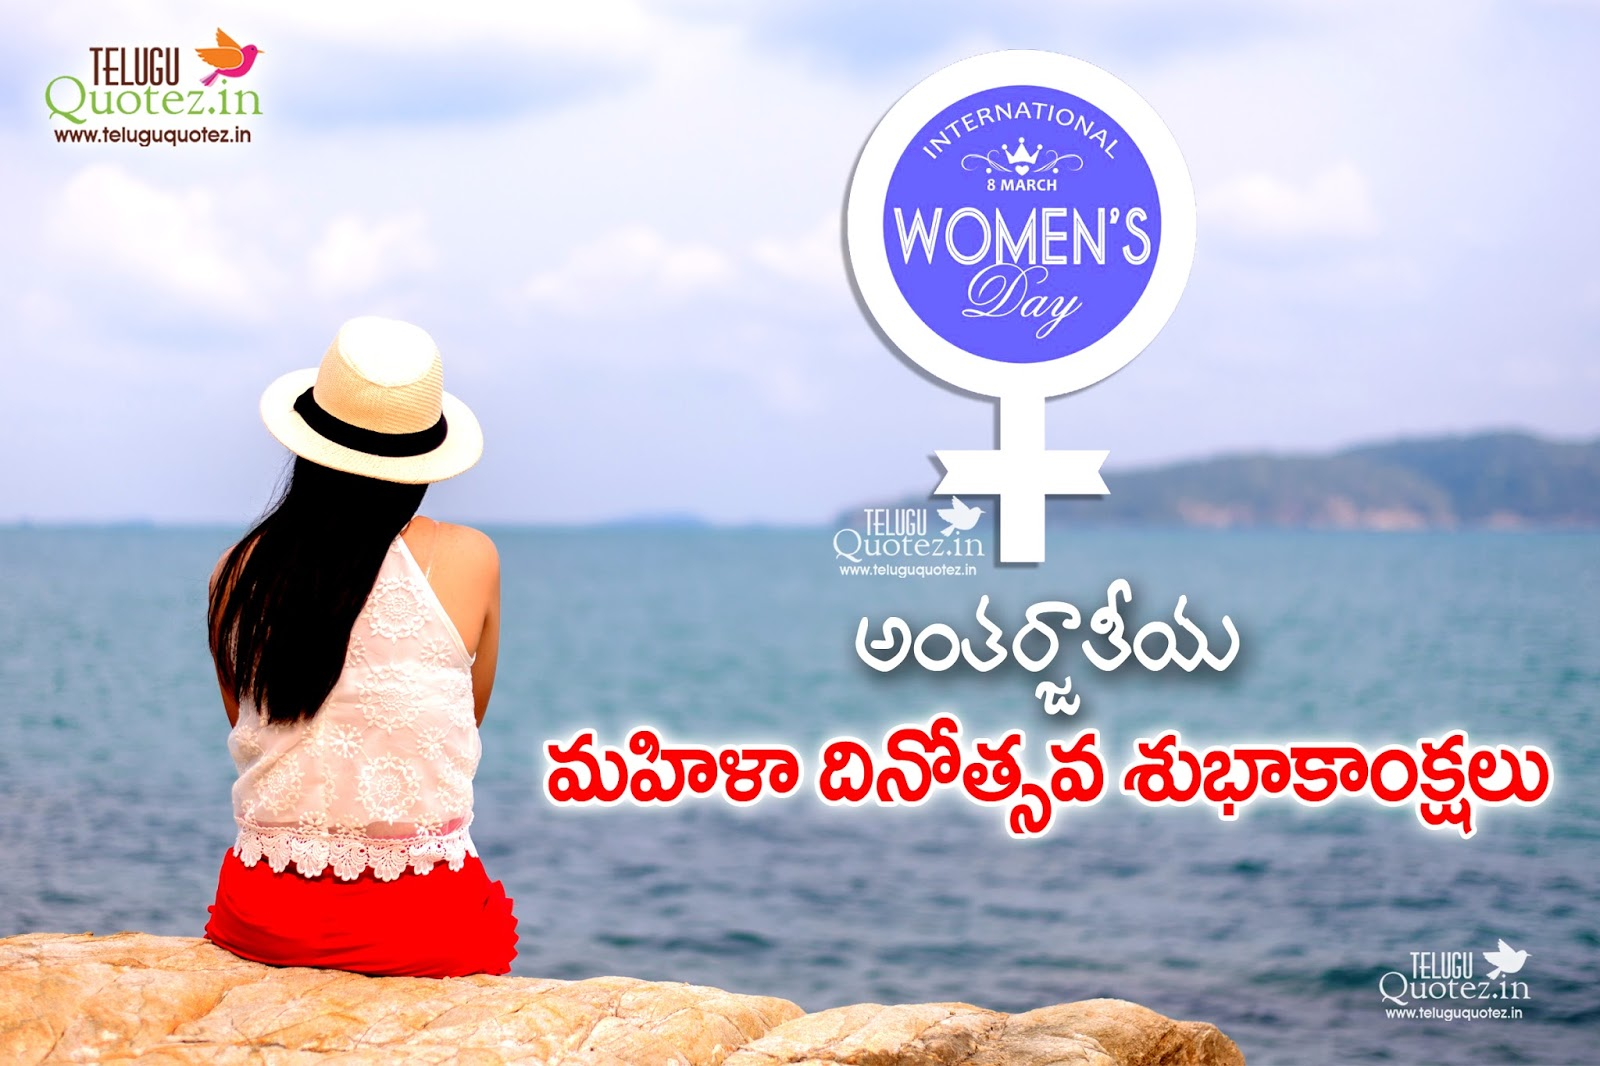 Womens Day Telugu Quotes And Wishes Hd Wallpapers Teluguquotezin